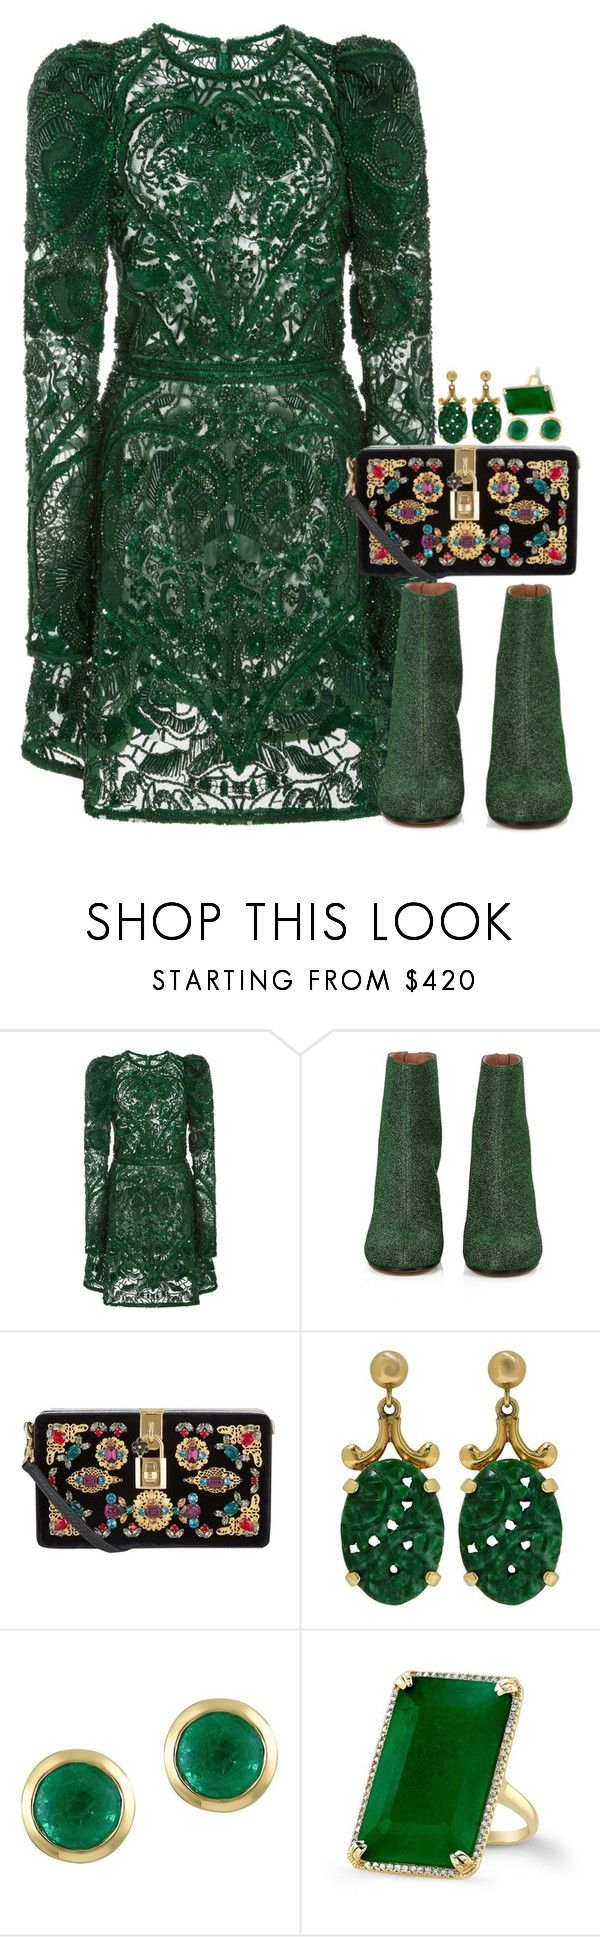 """""""Green goddess"""" by seventeene ❤ liked on Polyvore featuring Elie Saab, Maison Margiela, Dolce&Gabbana, Effy Jewelry and Anne Sisteron"""